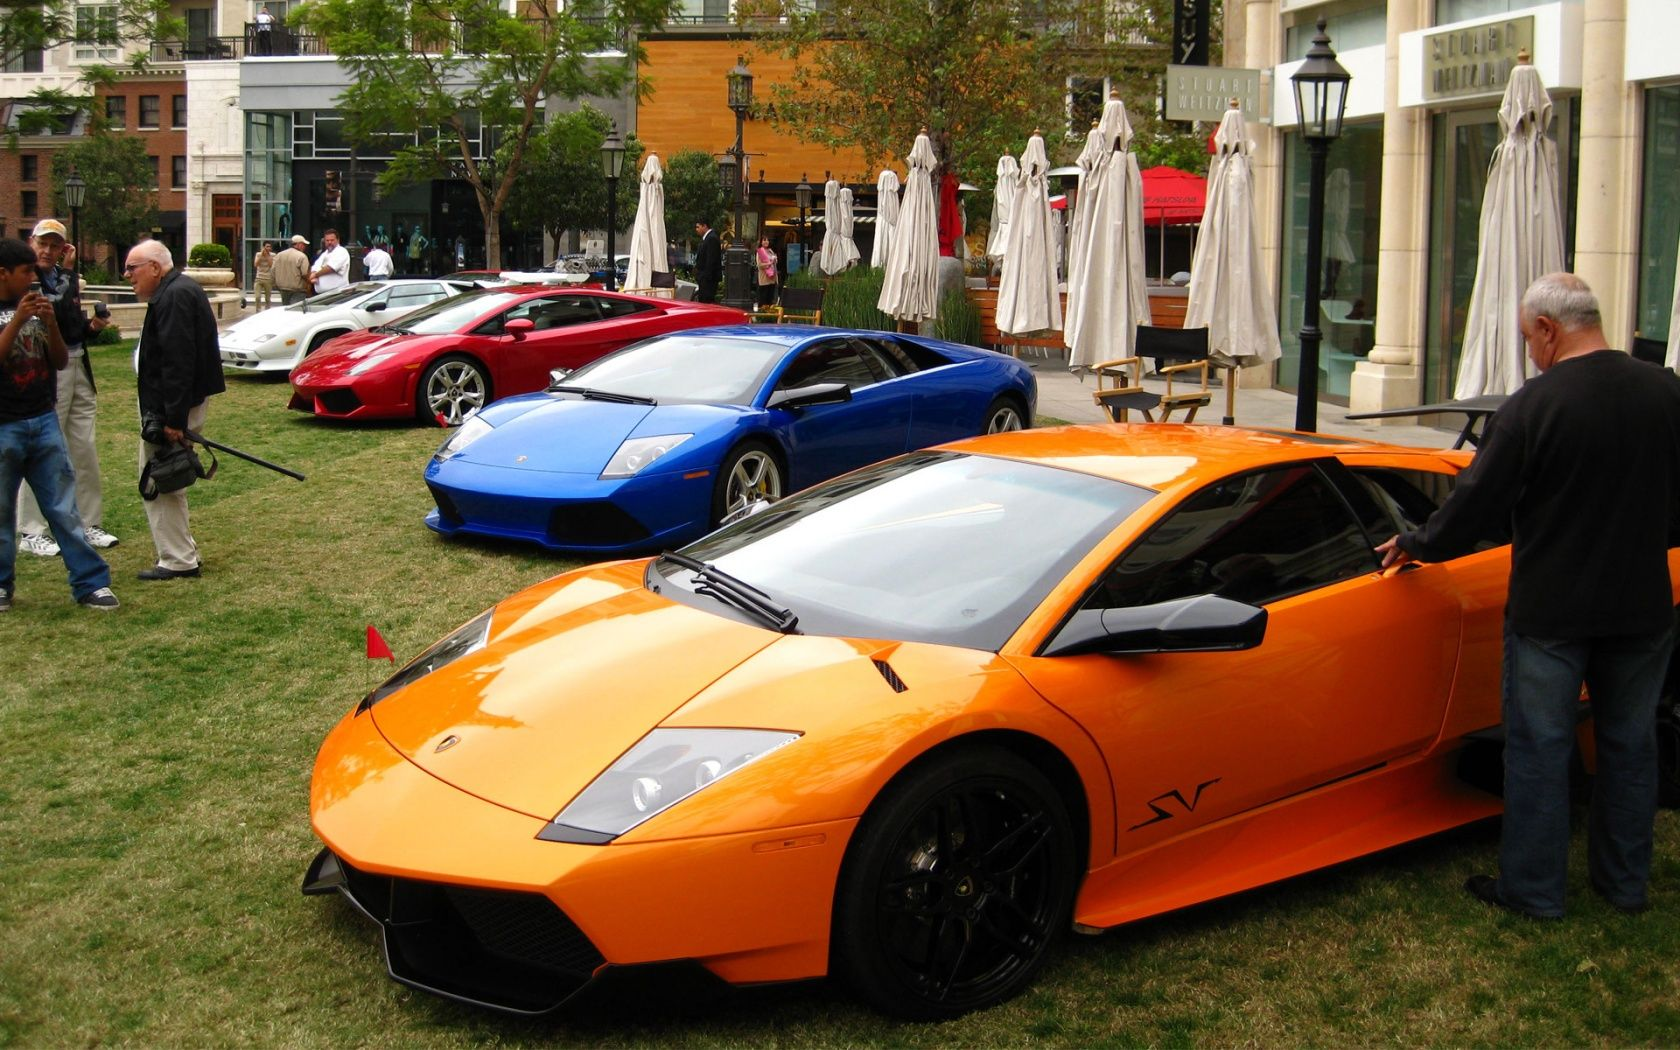 Best Ideas About Lamborghini Gallardo Price On Pinterest